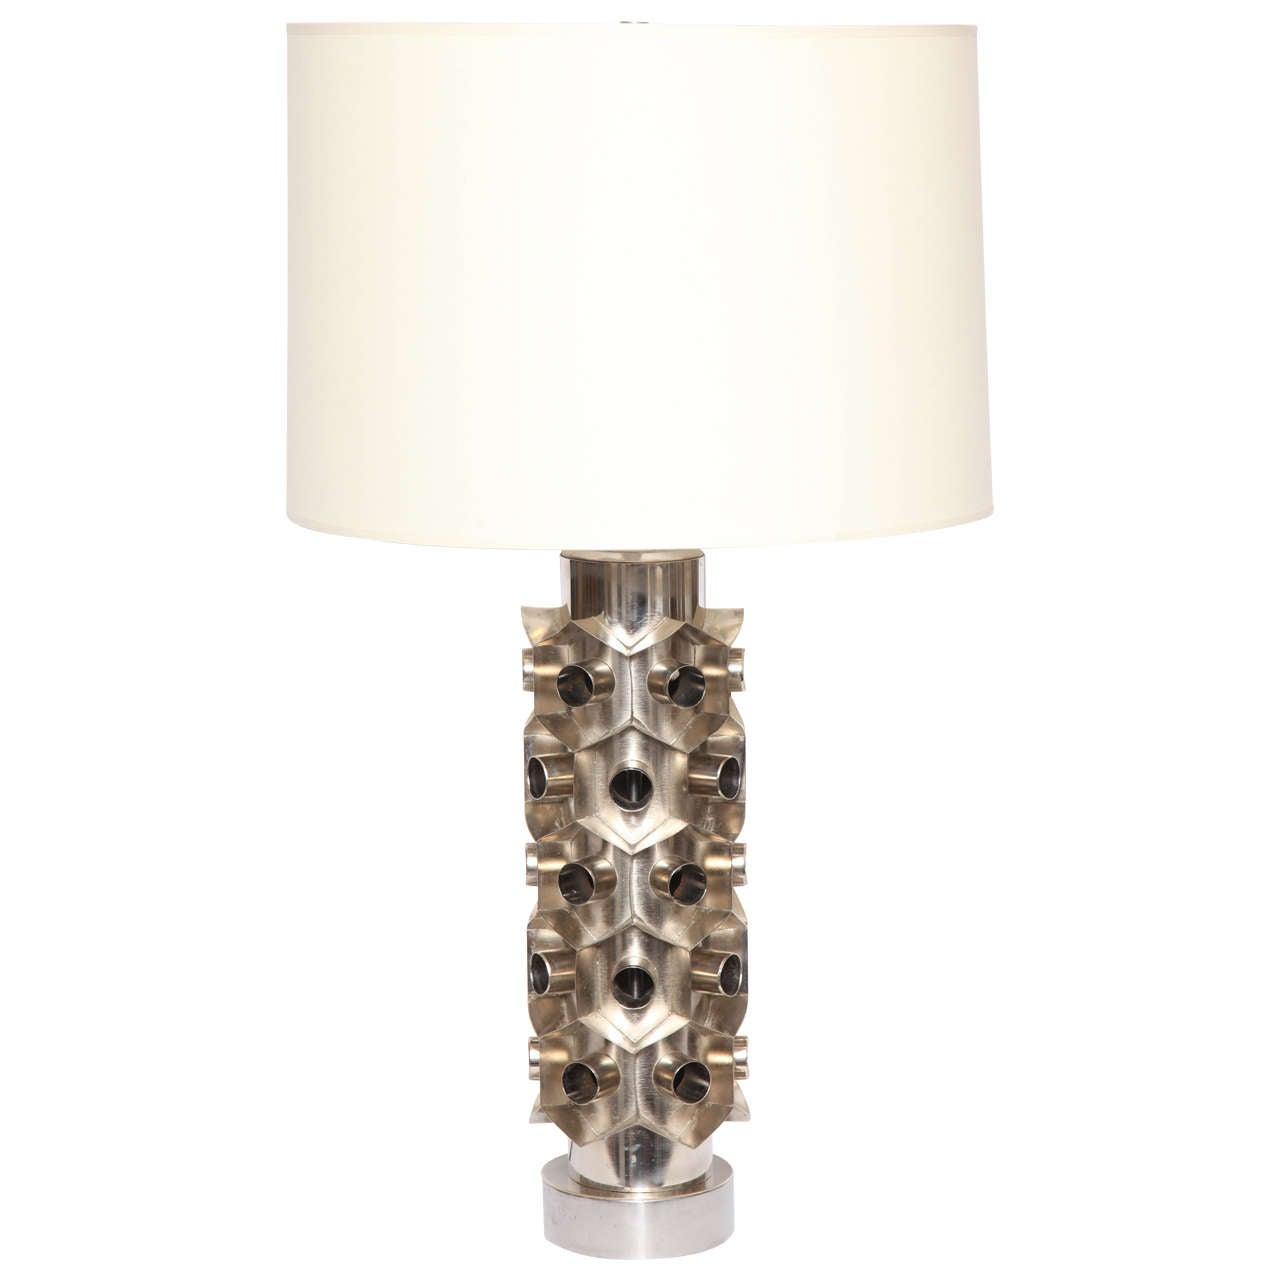 1960s Brutalist Nickeled Metal Table Lamp For Sale